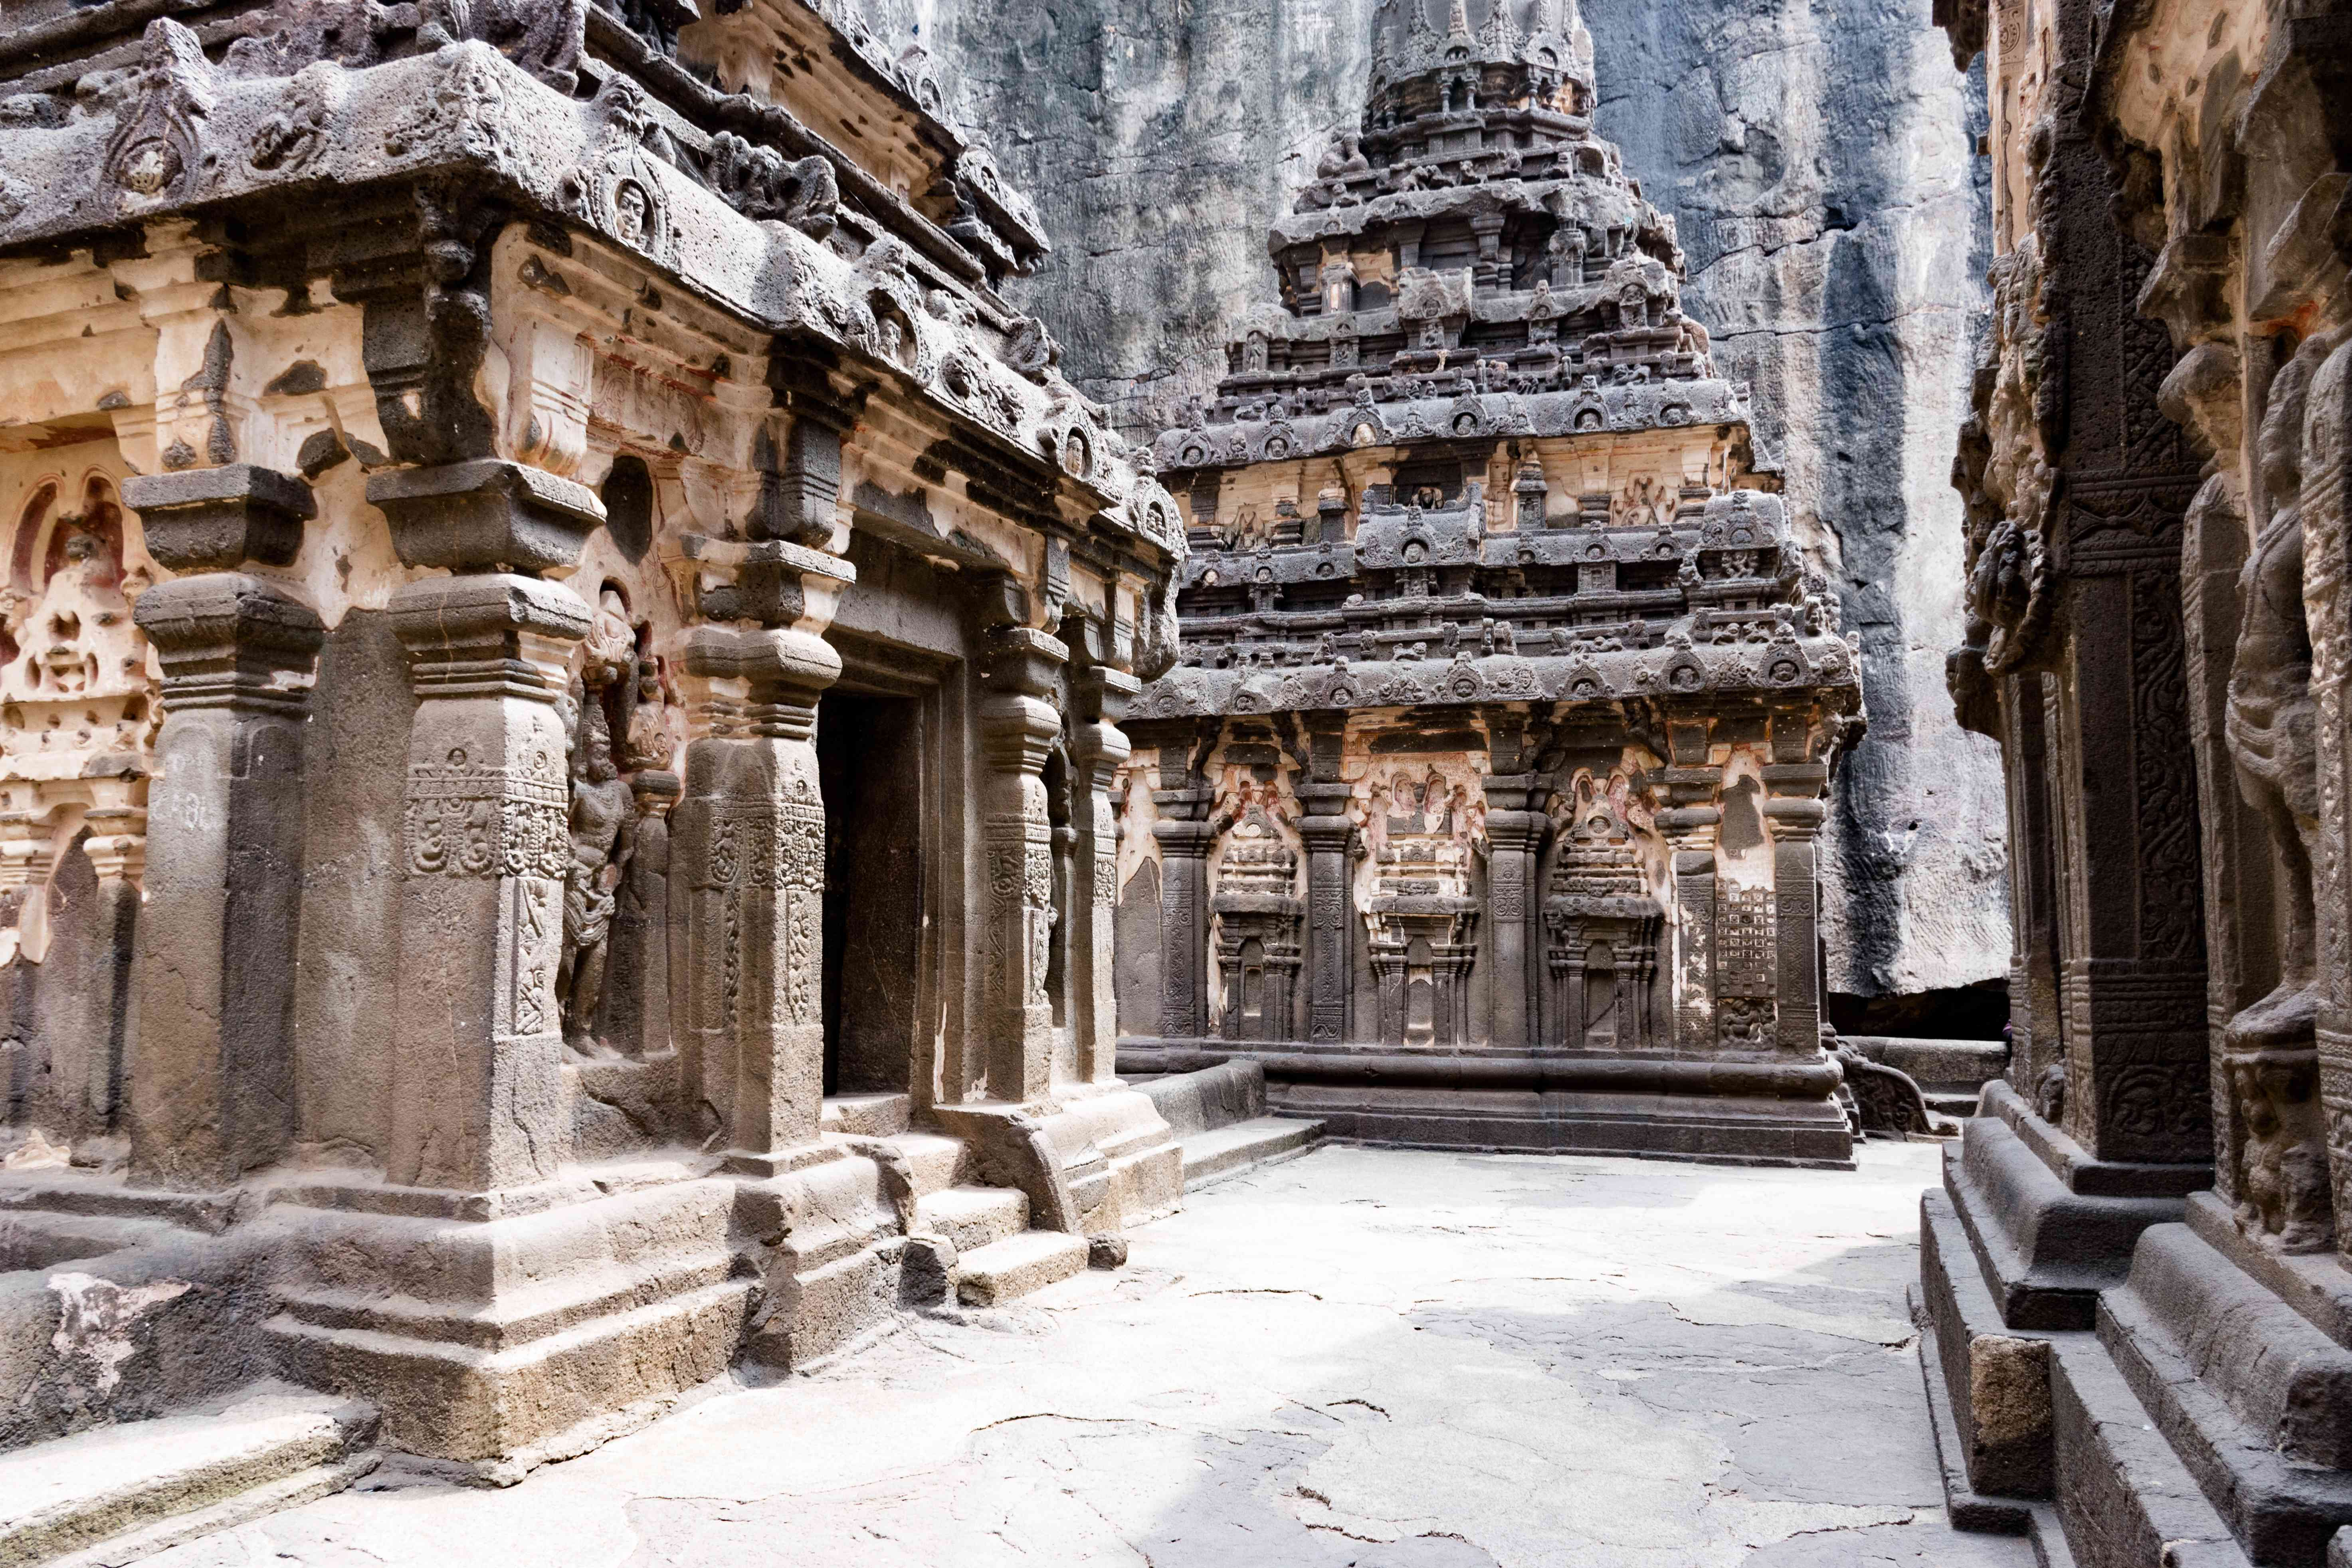 Temples inside the cave